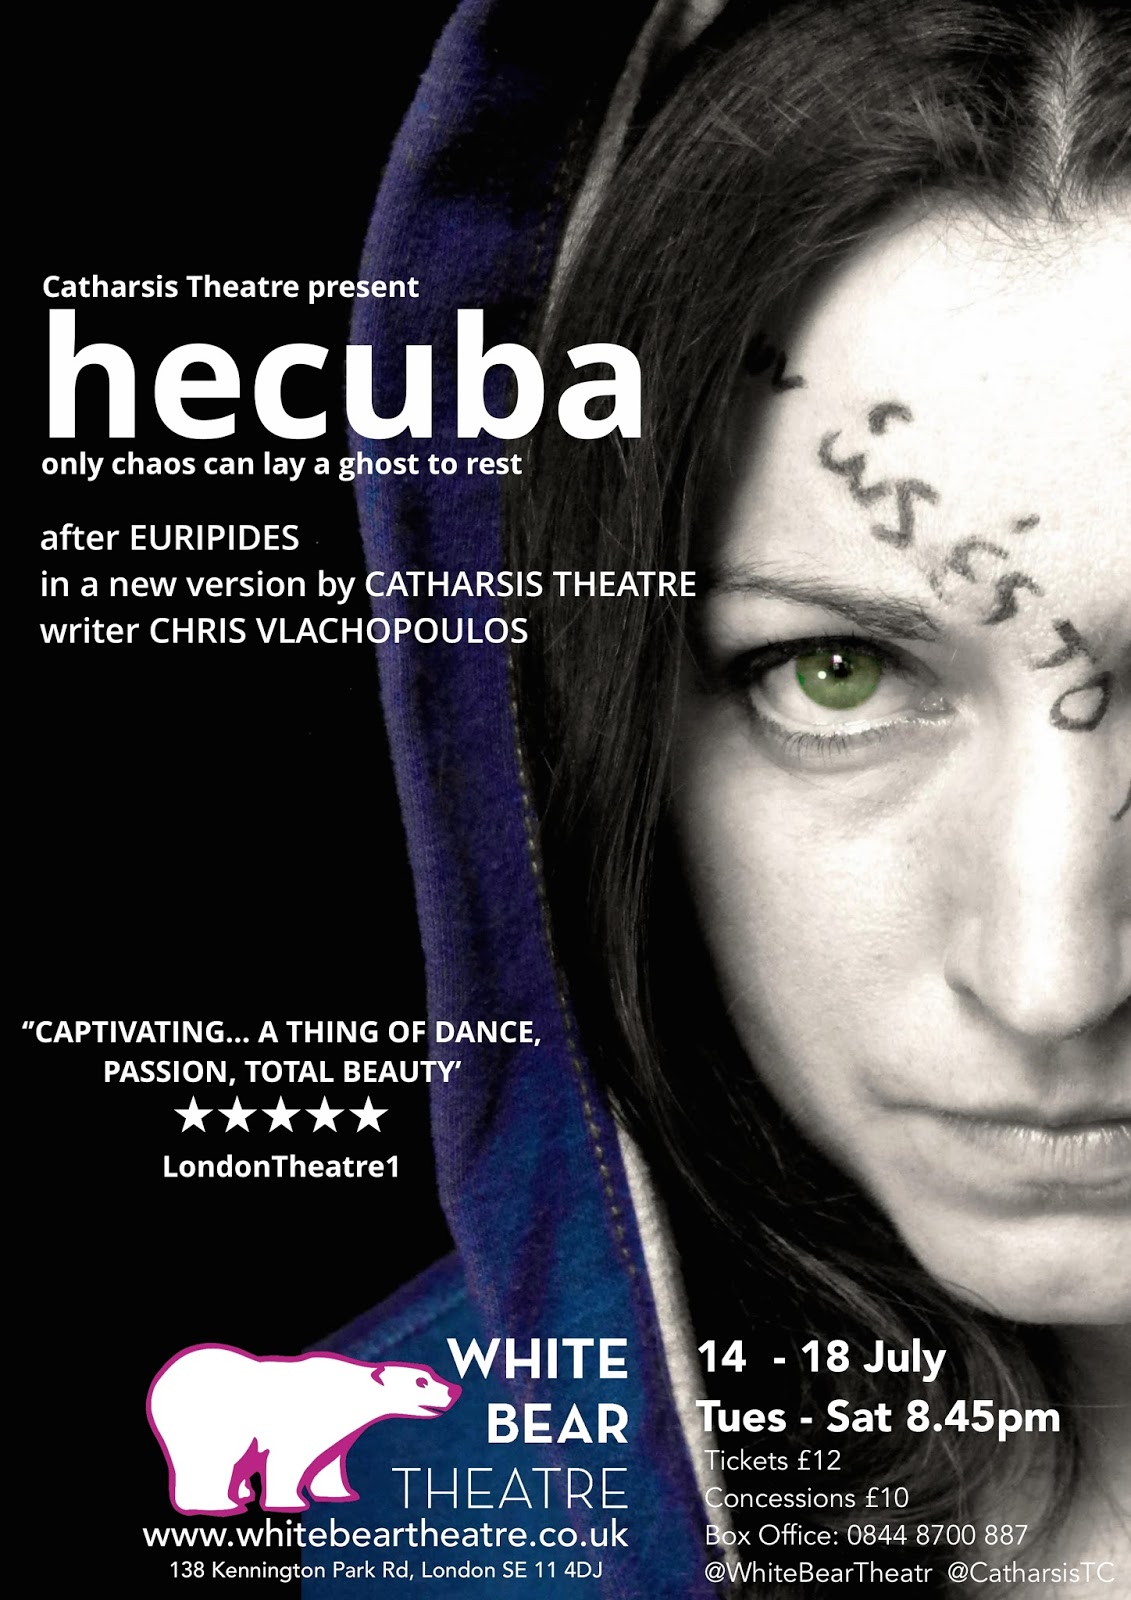 hecuba white bear theatre the gizzle review. Black Bedroom Furniture Sets. Home Design Ideas